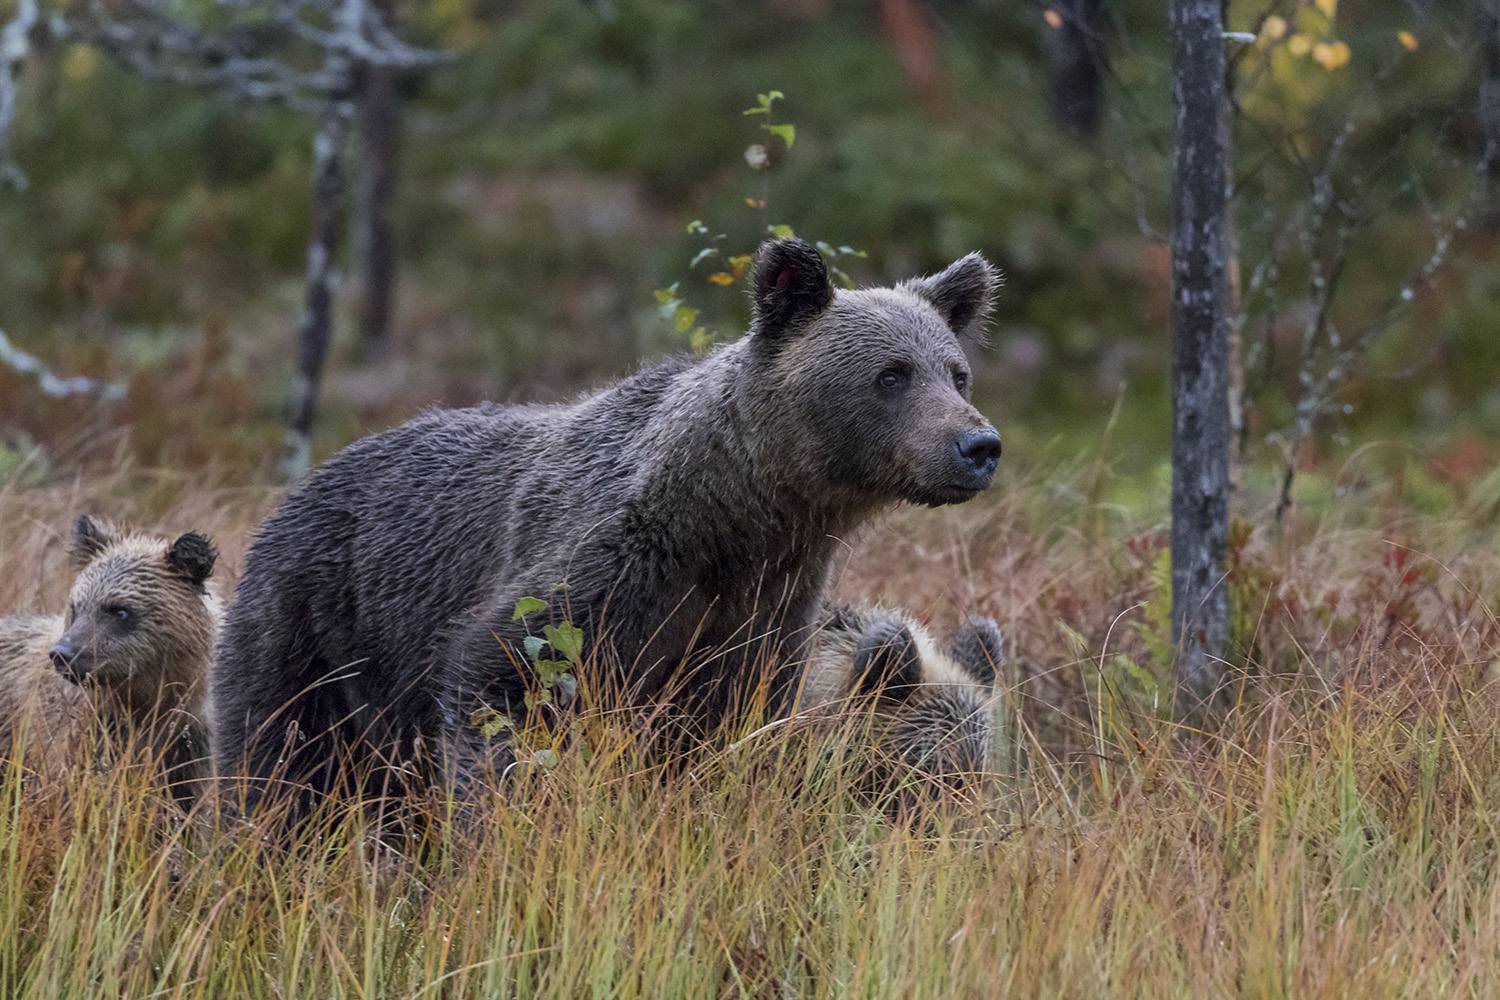 Wild bear with cubs in Kuhmo, Finland